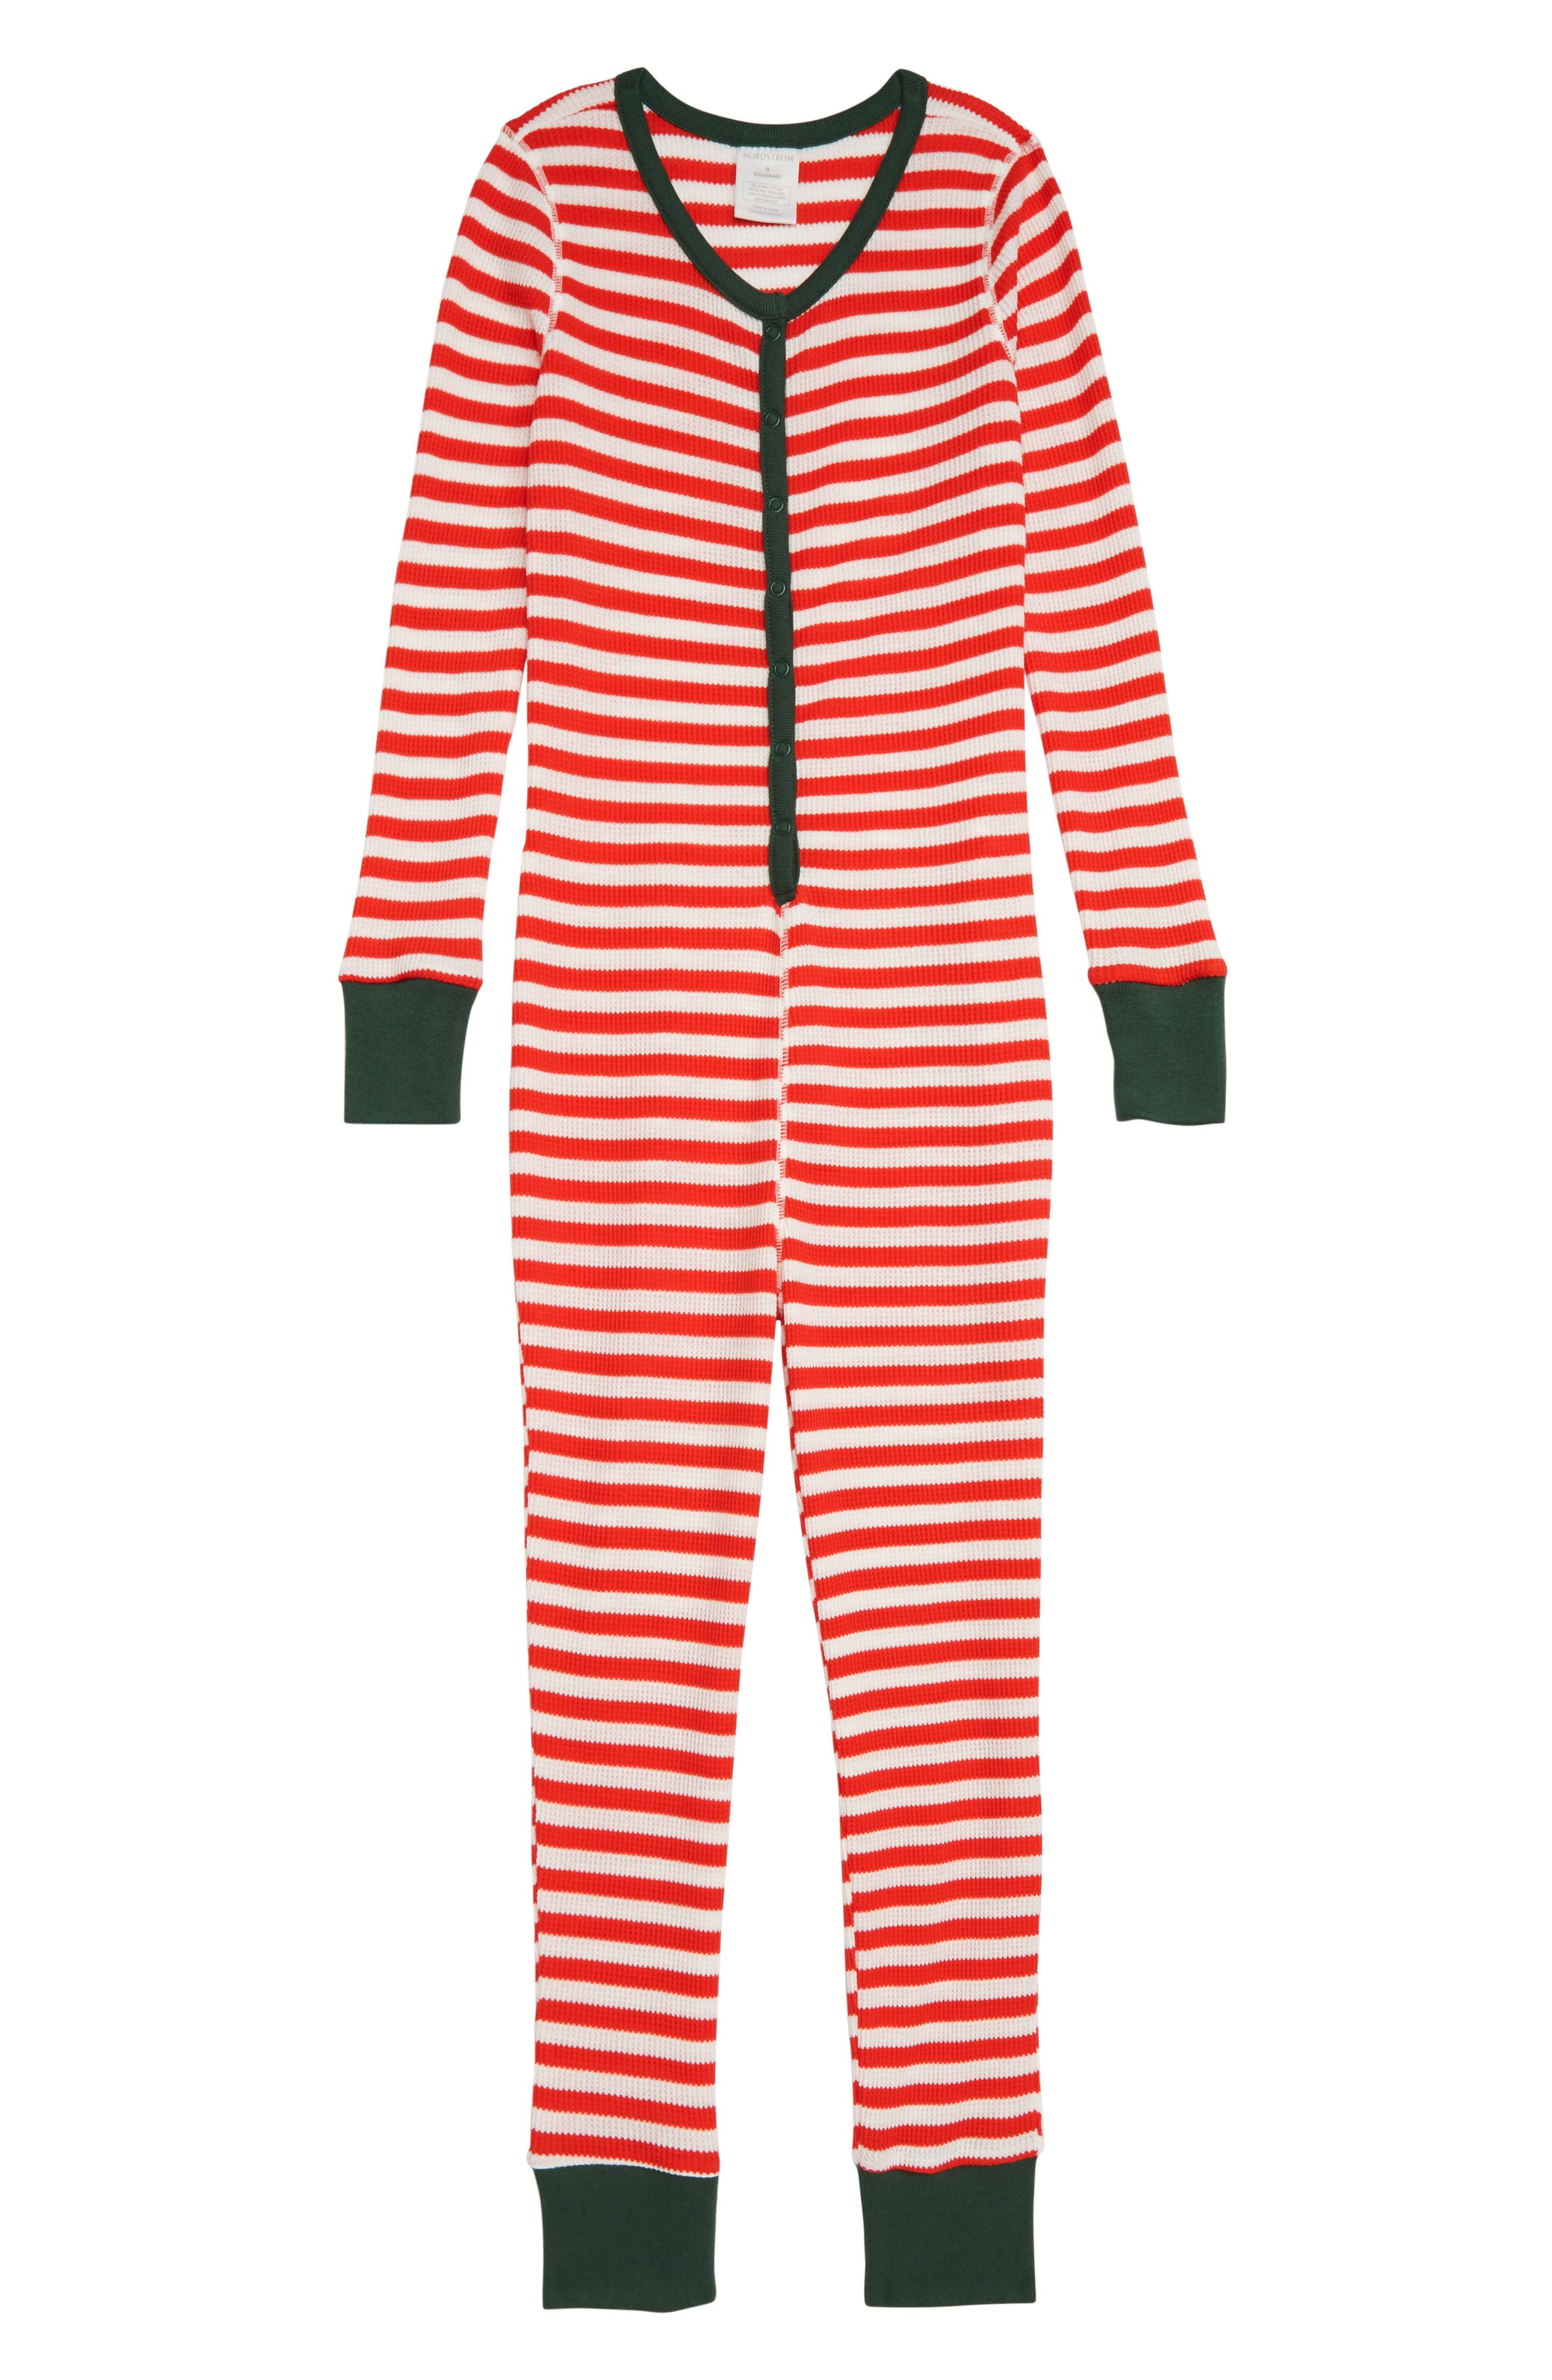 Thermal Fitted One-Piece Pajamas,                         Main,                         color, RED BLOOM STRIPE